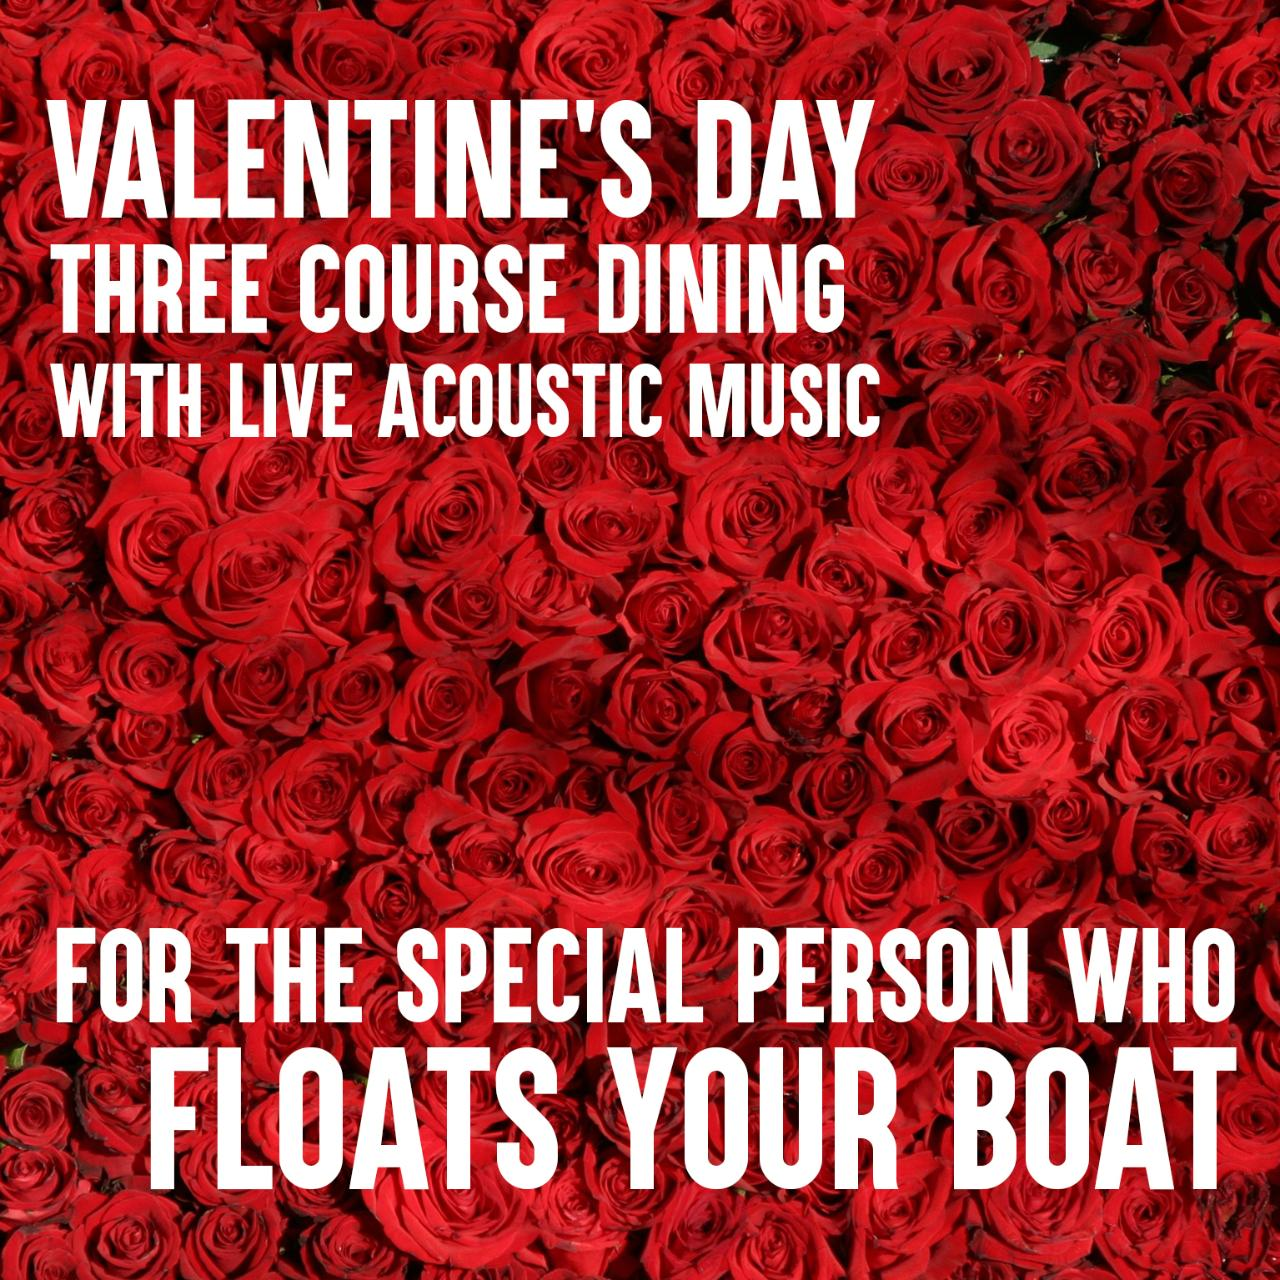 Valentine's Day - Romantic 3 Course Dinner Cruise